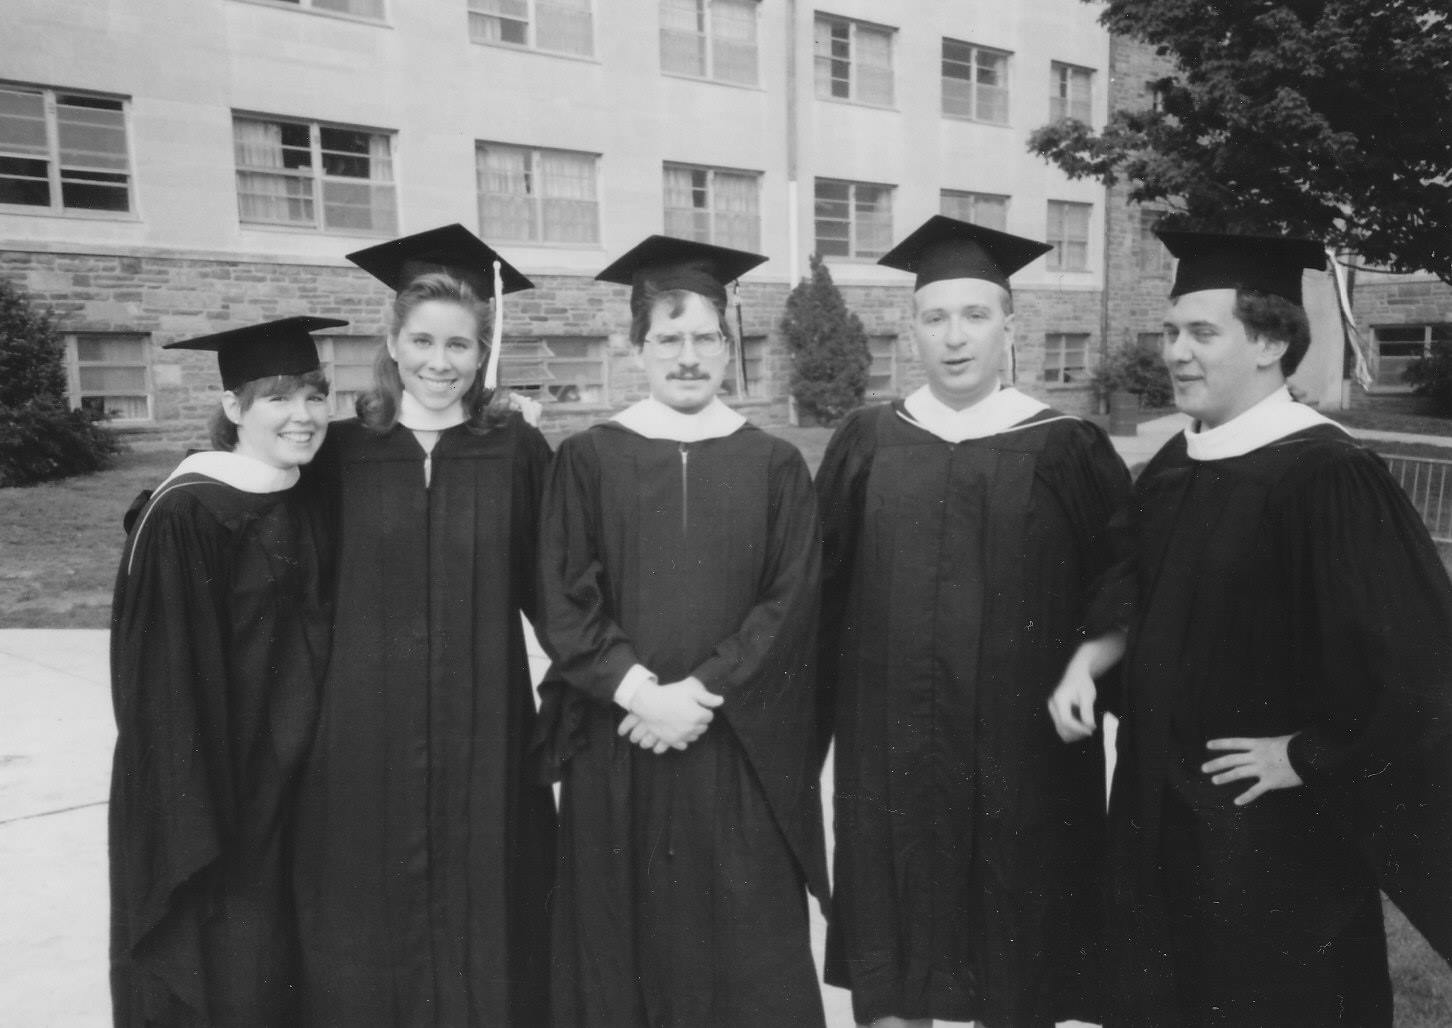 JQ graduation photo 1984